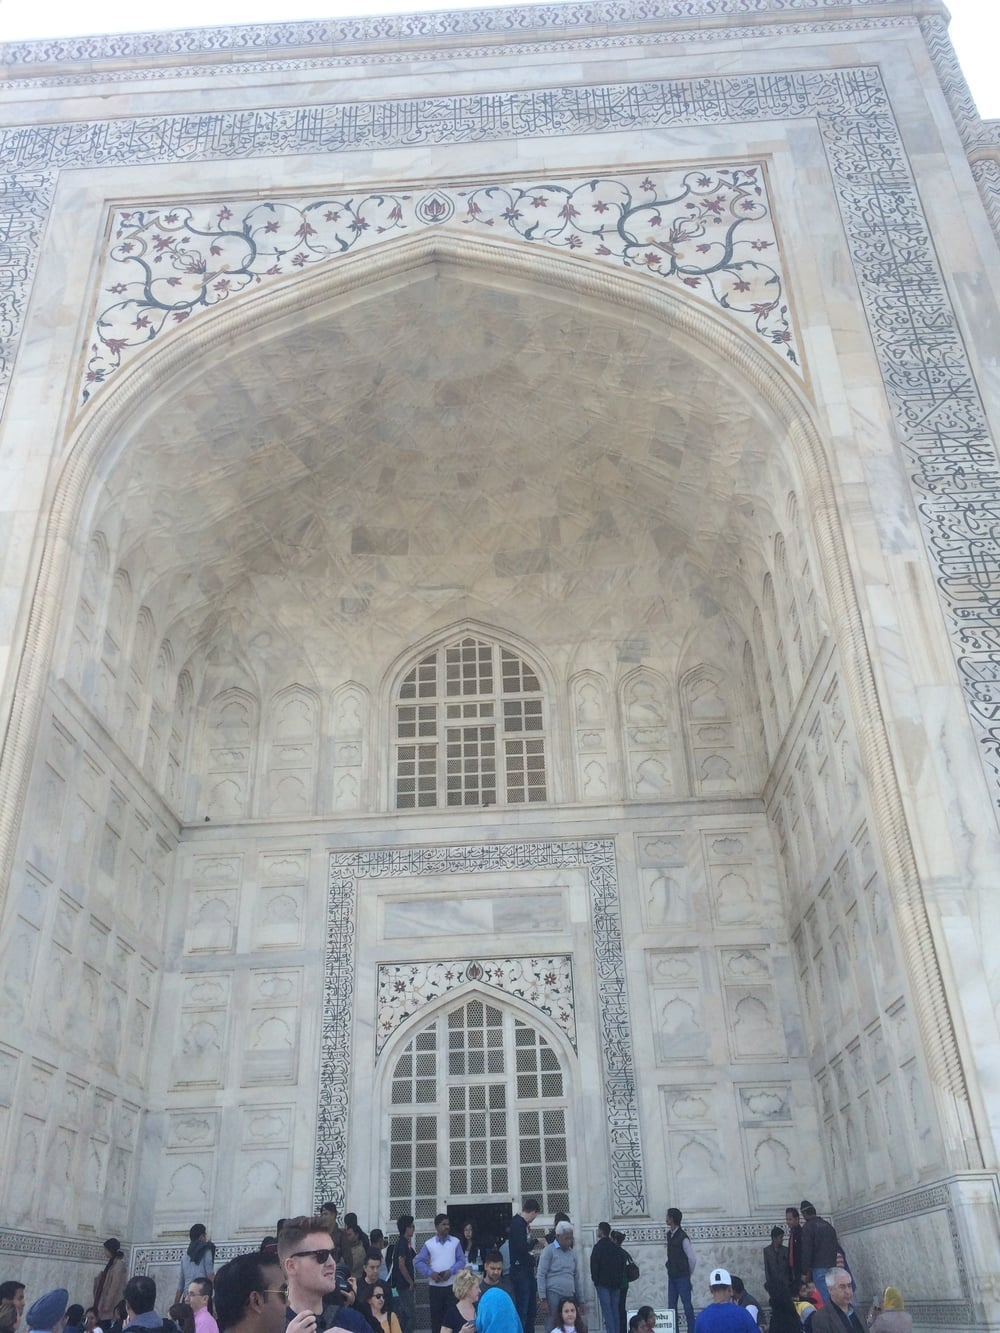 The Taj, in detail. While it is majestic, it's hard to believe that all of this was created to house one dead woman.